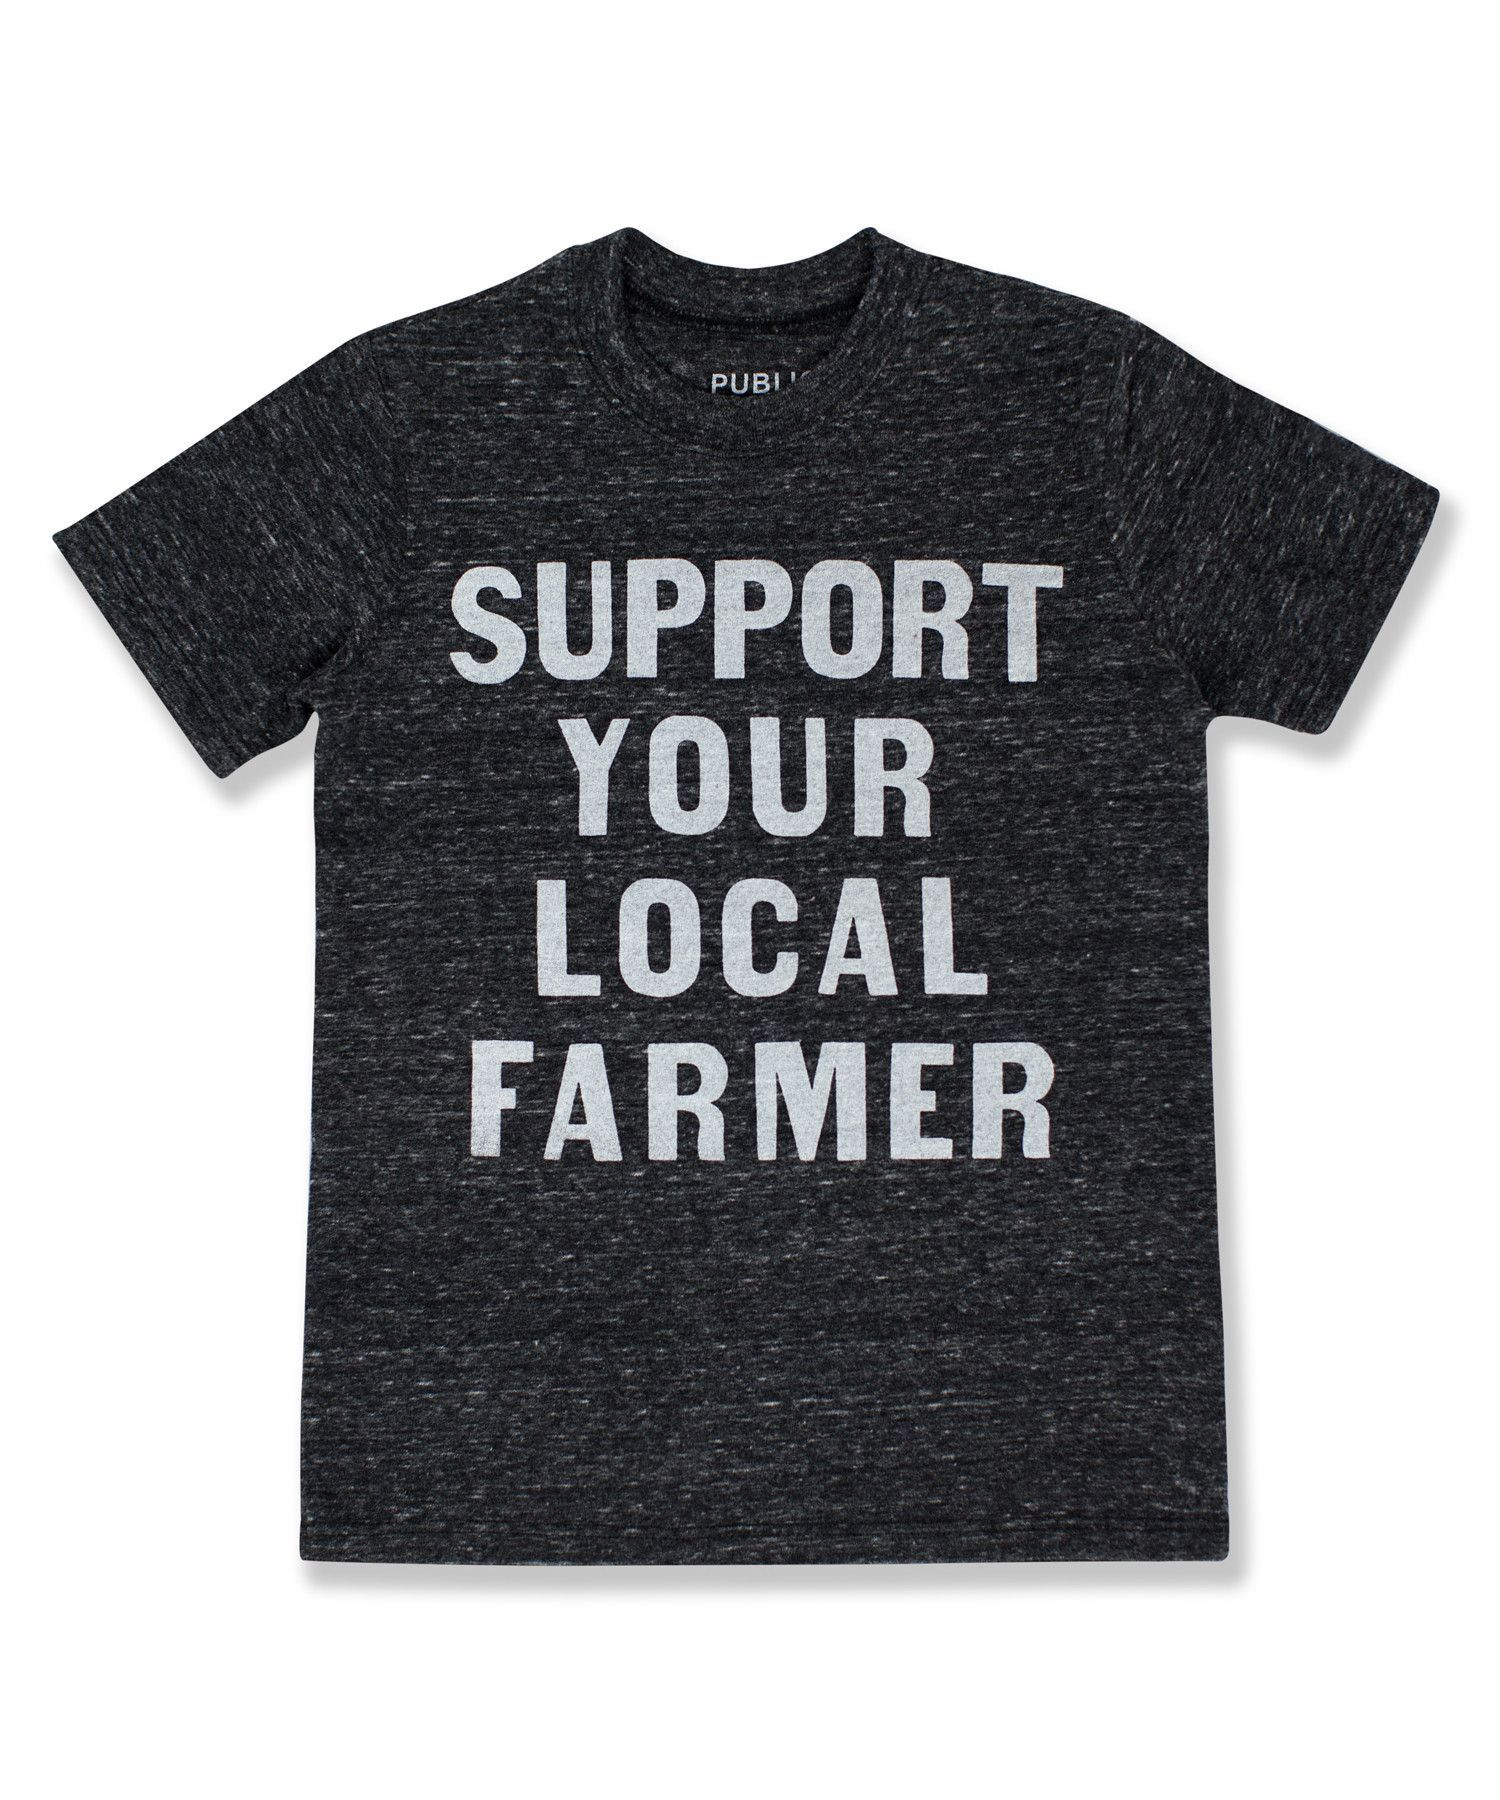 3ea7f714 Kids Support Your Local Farmer T-Shirt   Farmers Market   Raleigh ...